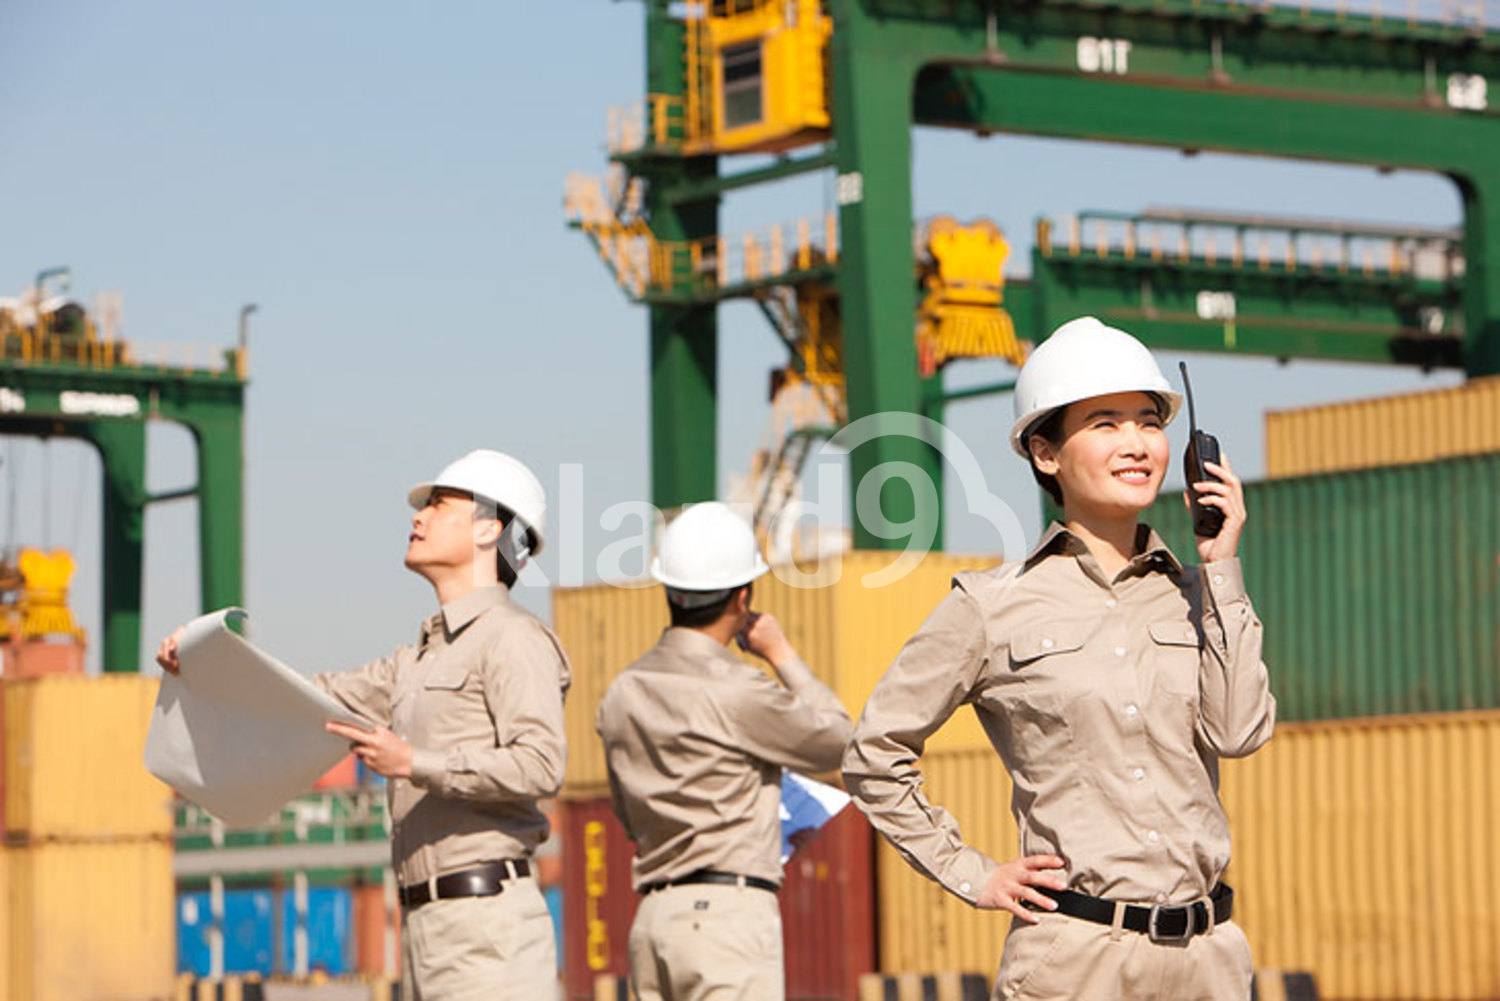 Chinese shipping industry workers at work